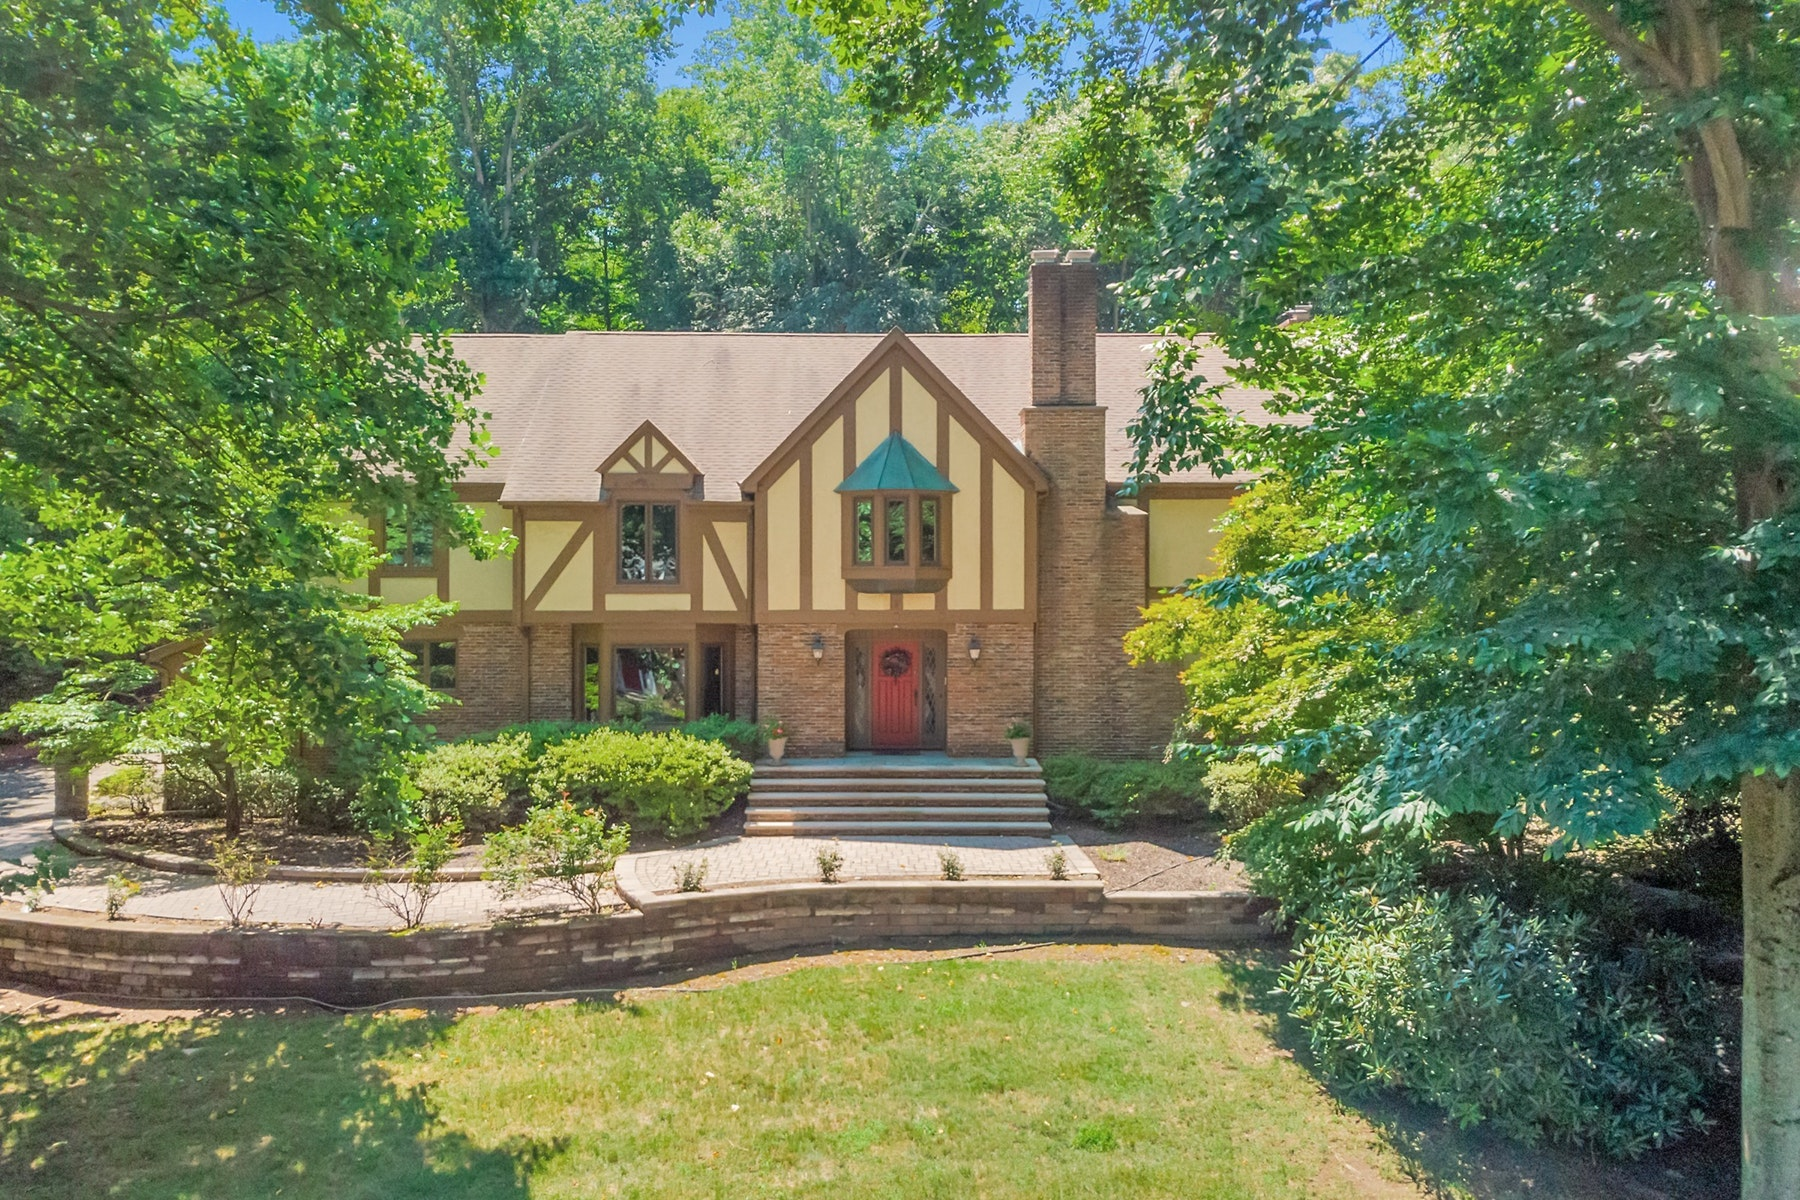 Single Family Homes for Sale at Classic Tudor Beauty 34 Gristmill Ln Upper Saddle River, New Jersey 07458 United States